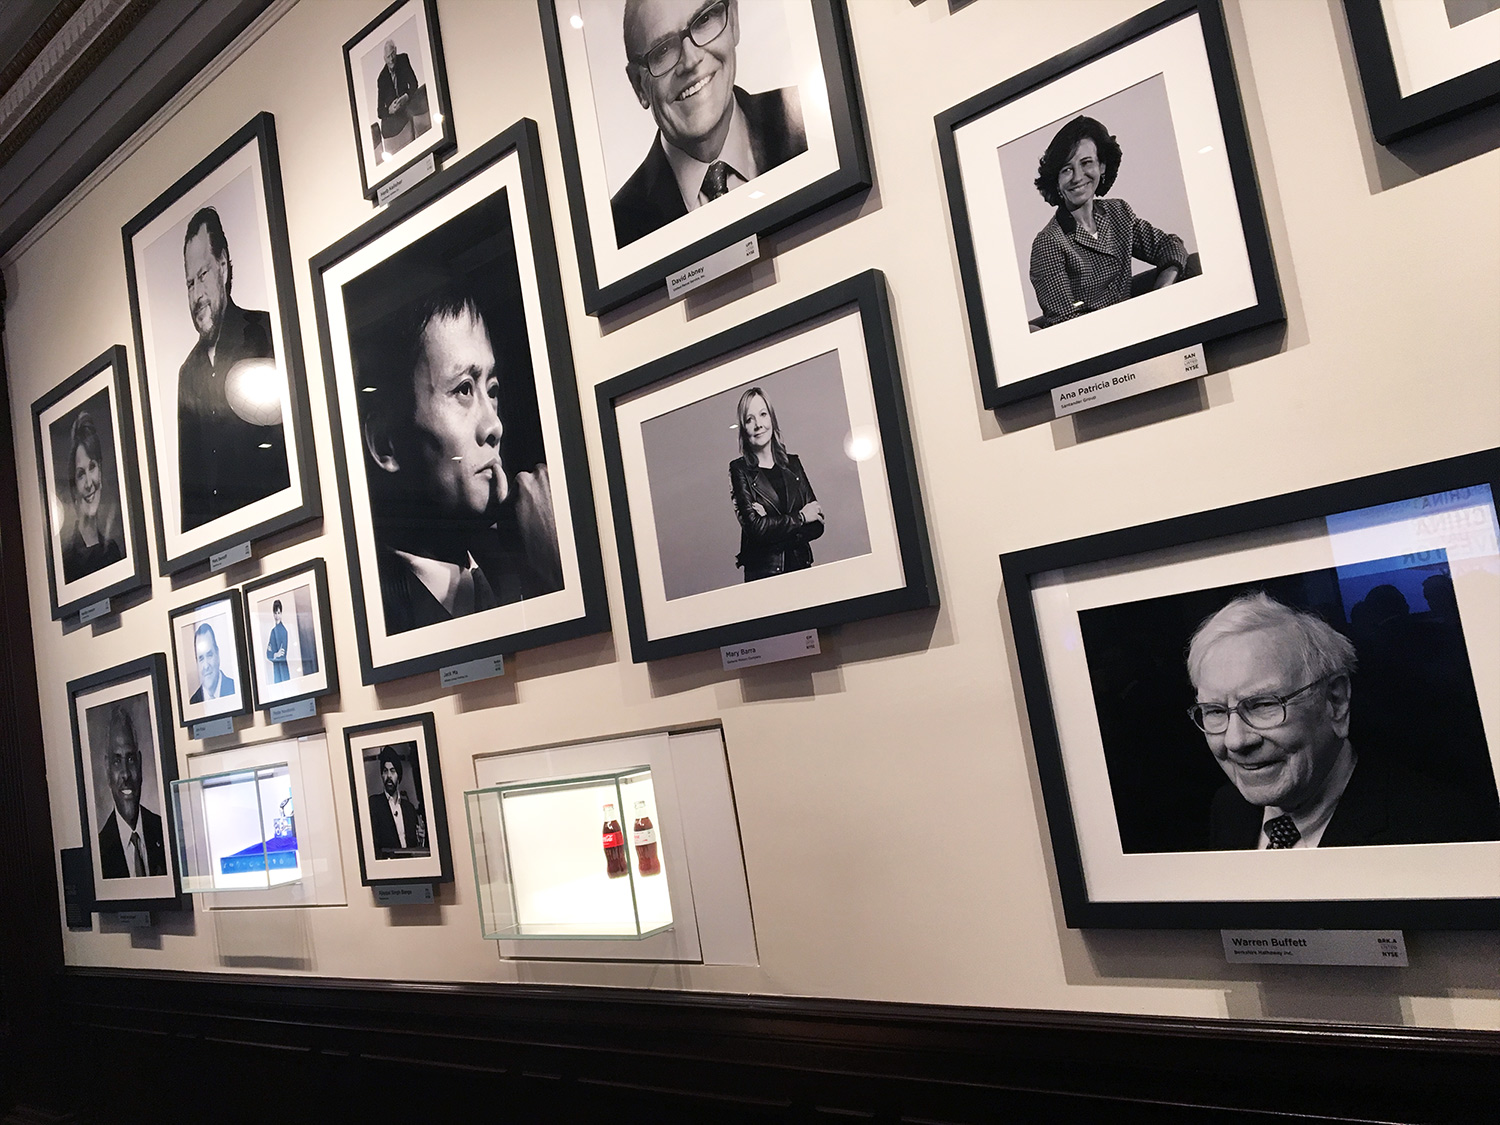 PHOTO: Jack Ma (Alibaba) dominates the wall of financial leaders. Warren Buffet (Berkshire Hathaway) lower right.